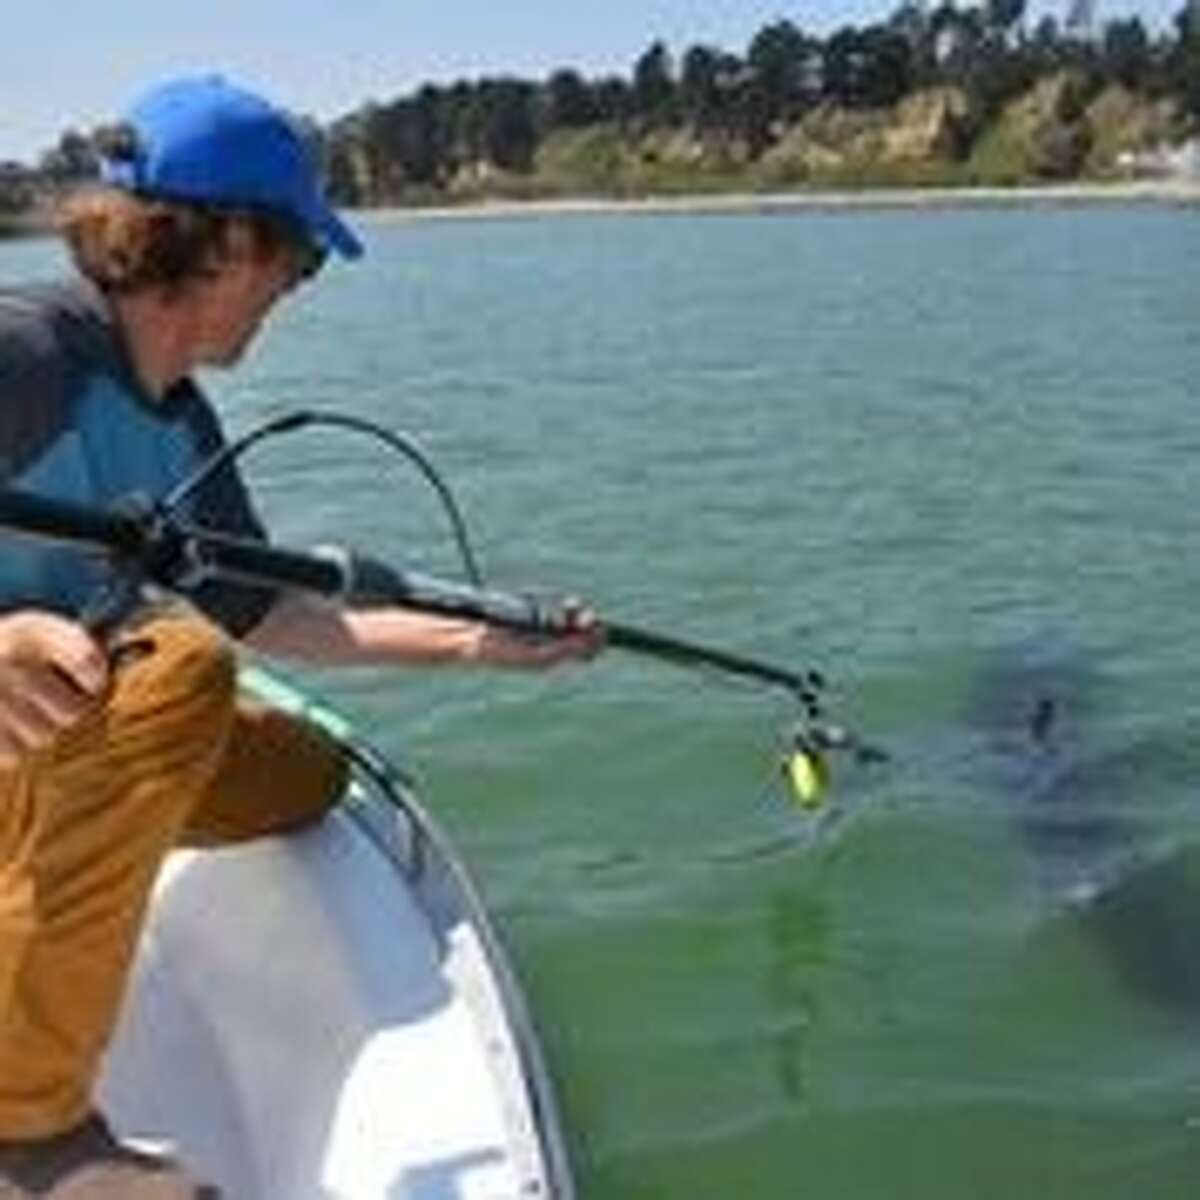 Salvador Jorgensen, a research scientist with the Monterey Bay Aquarium, tags a shark off the coast of California.